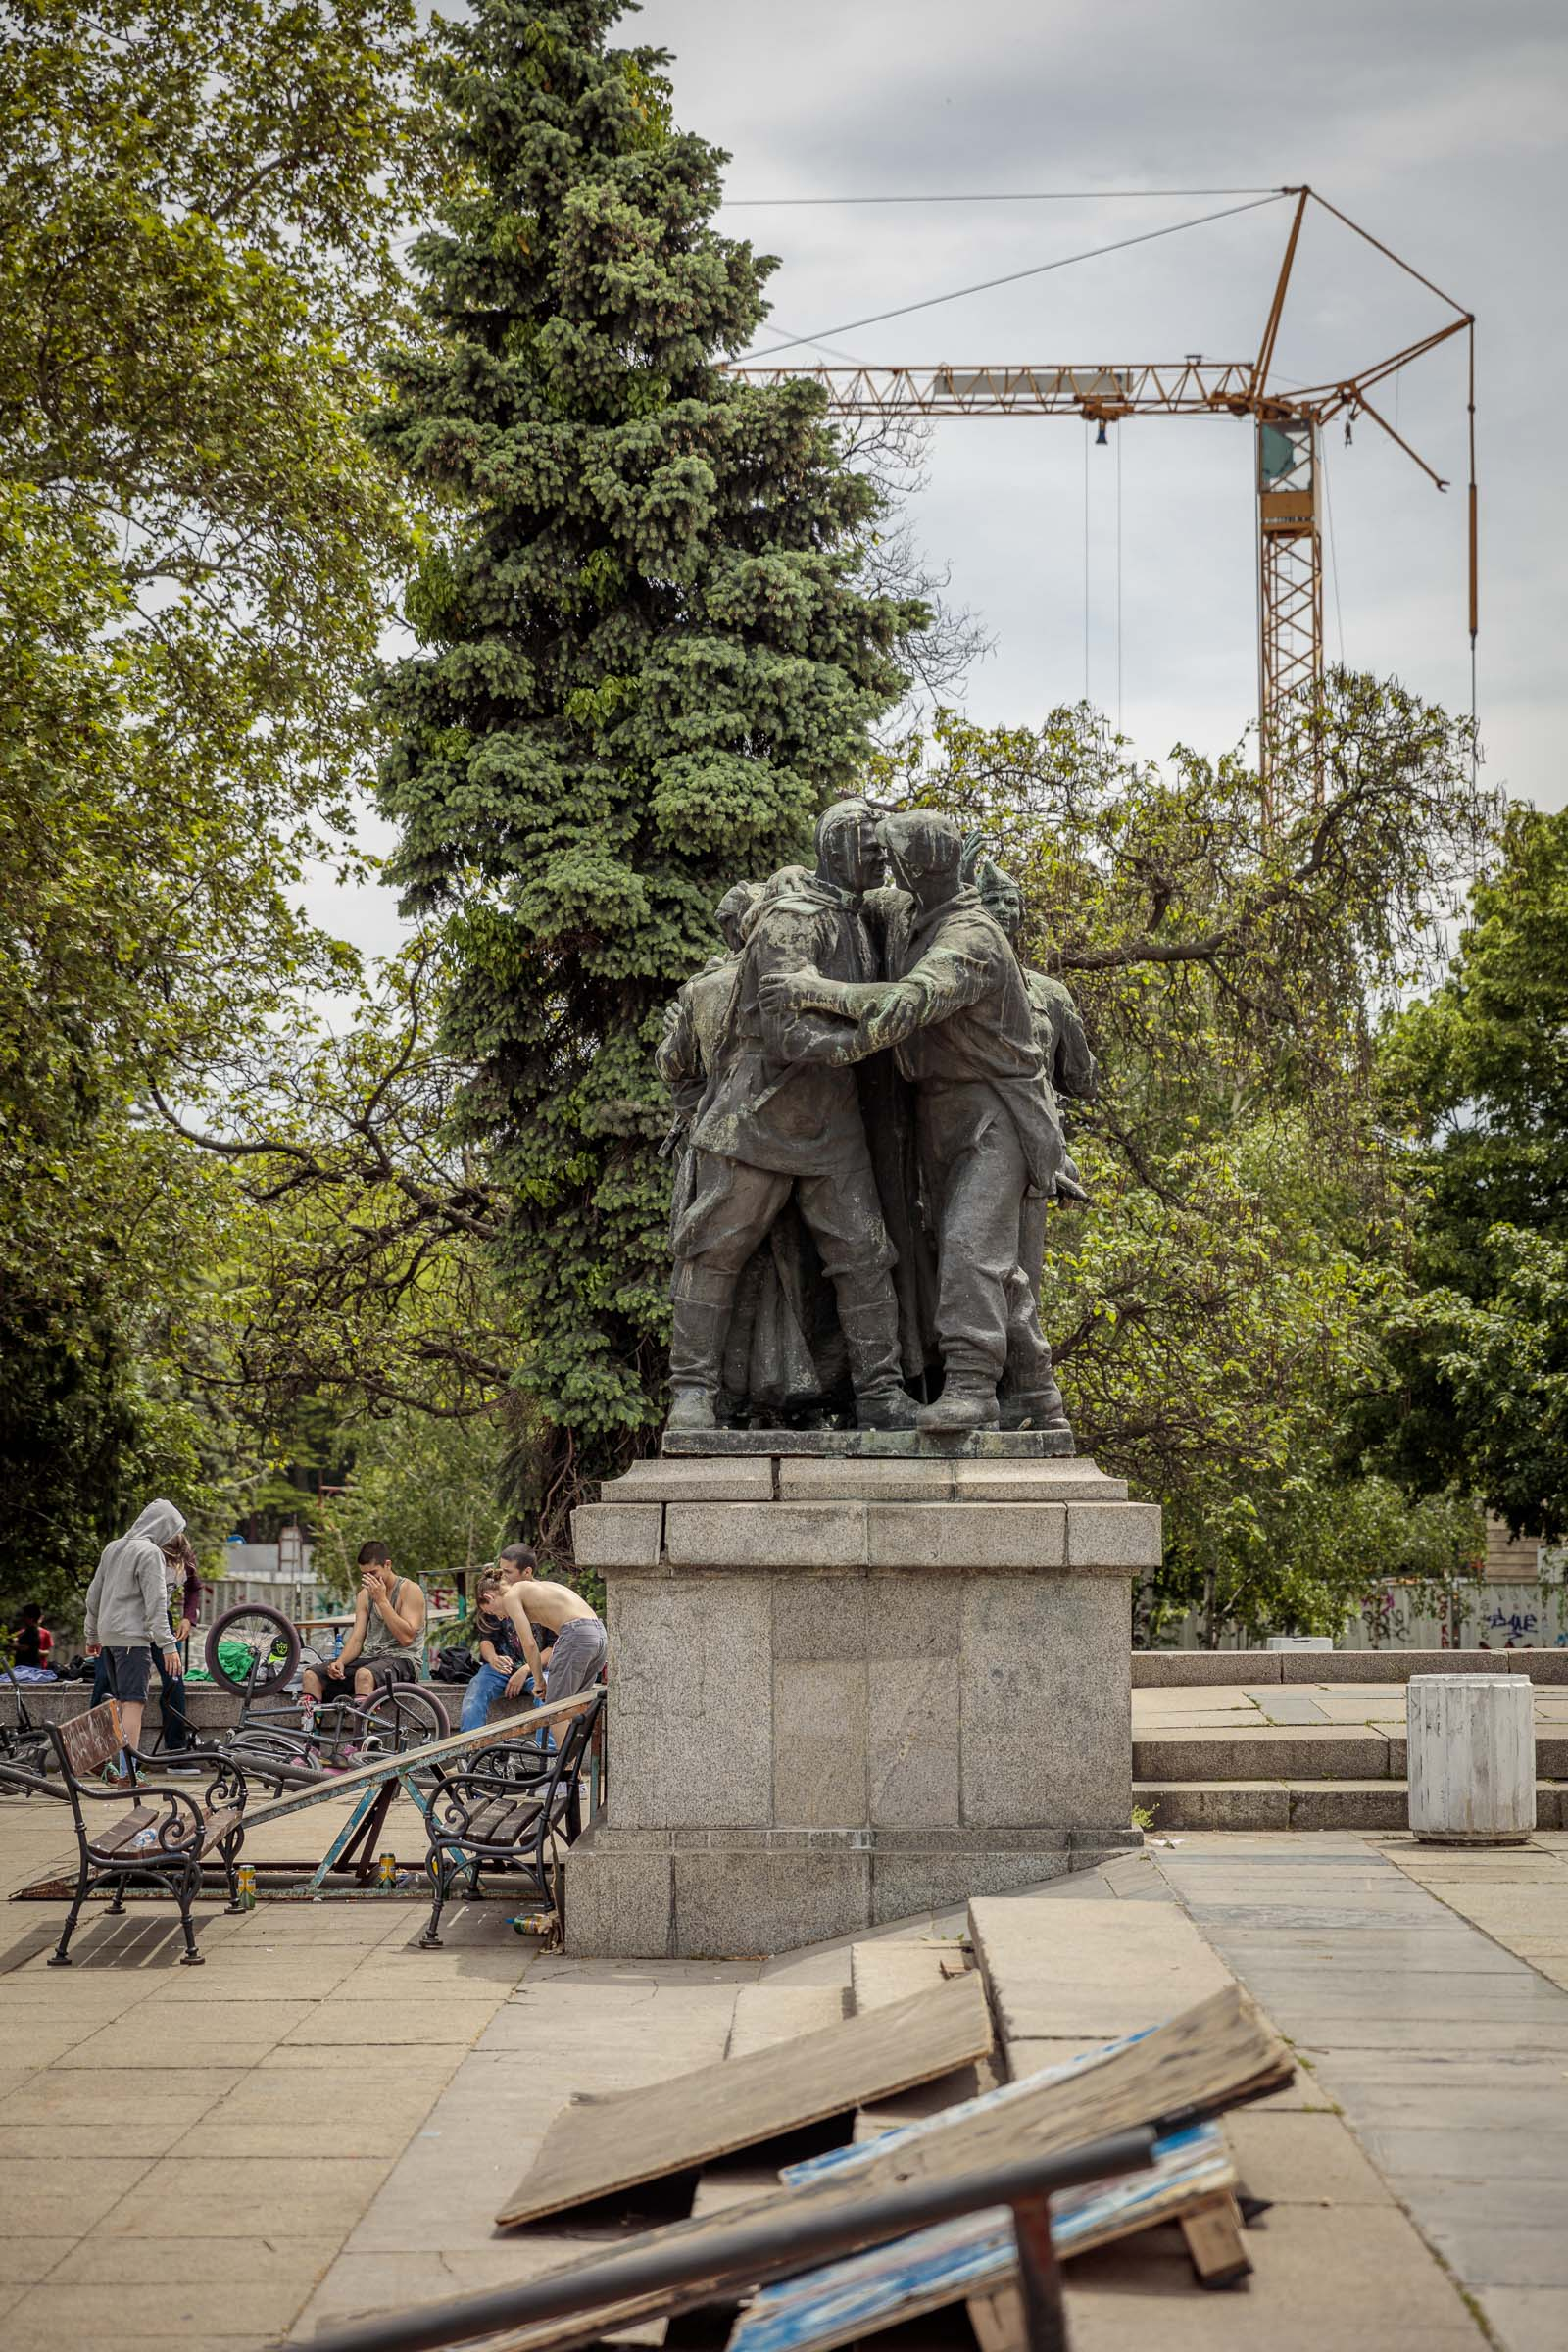 william-short-photography-sofia-monument-to-the-soviet-army-236.JPG